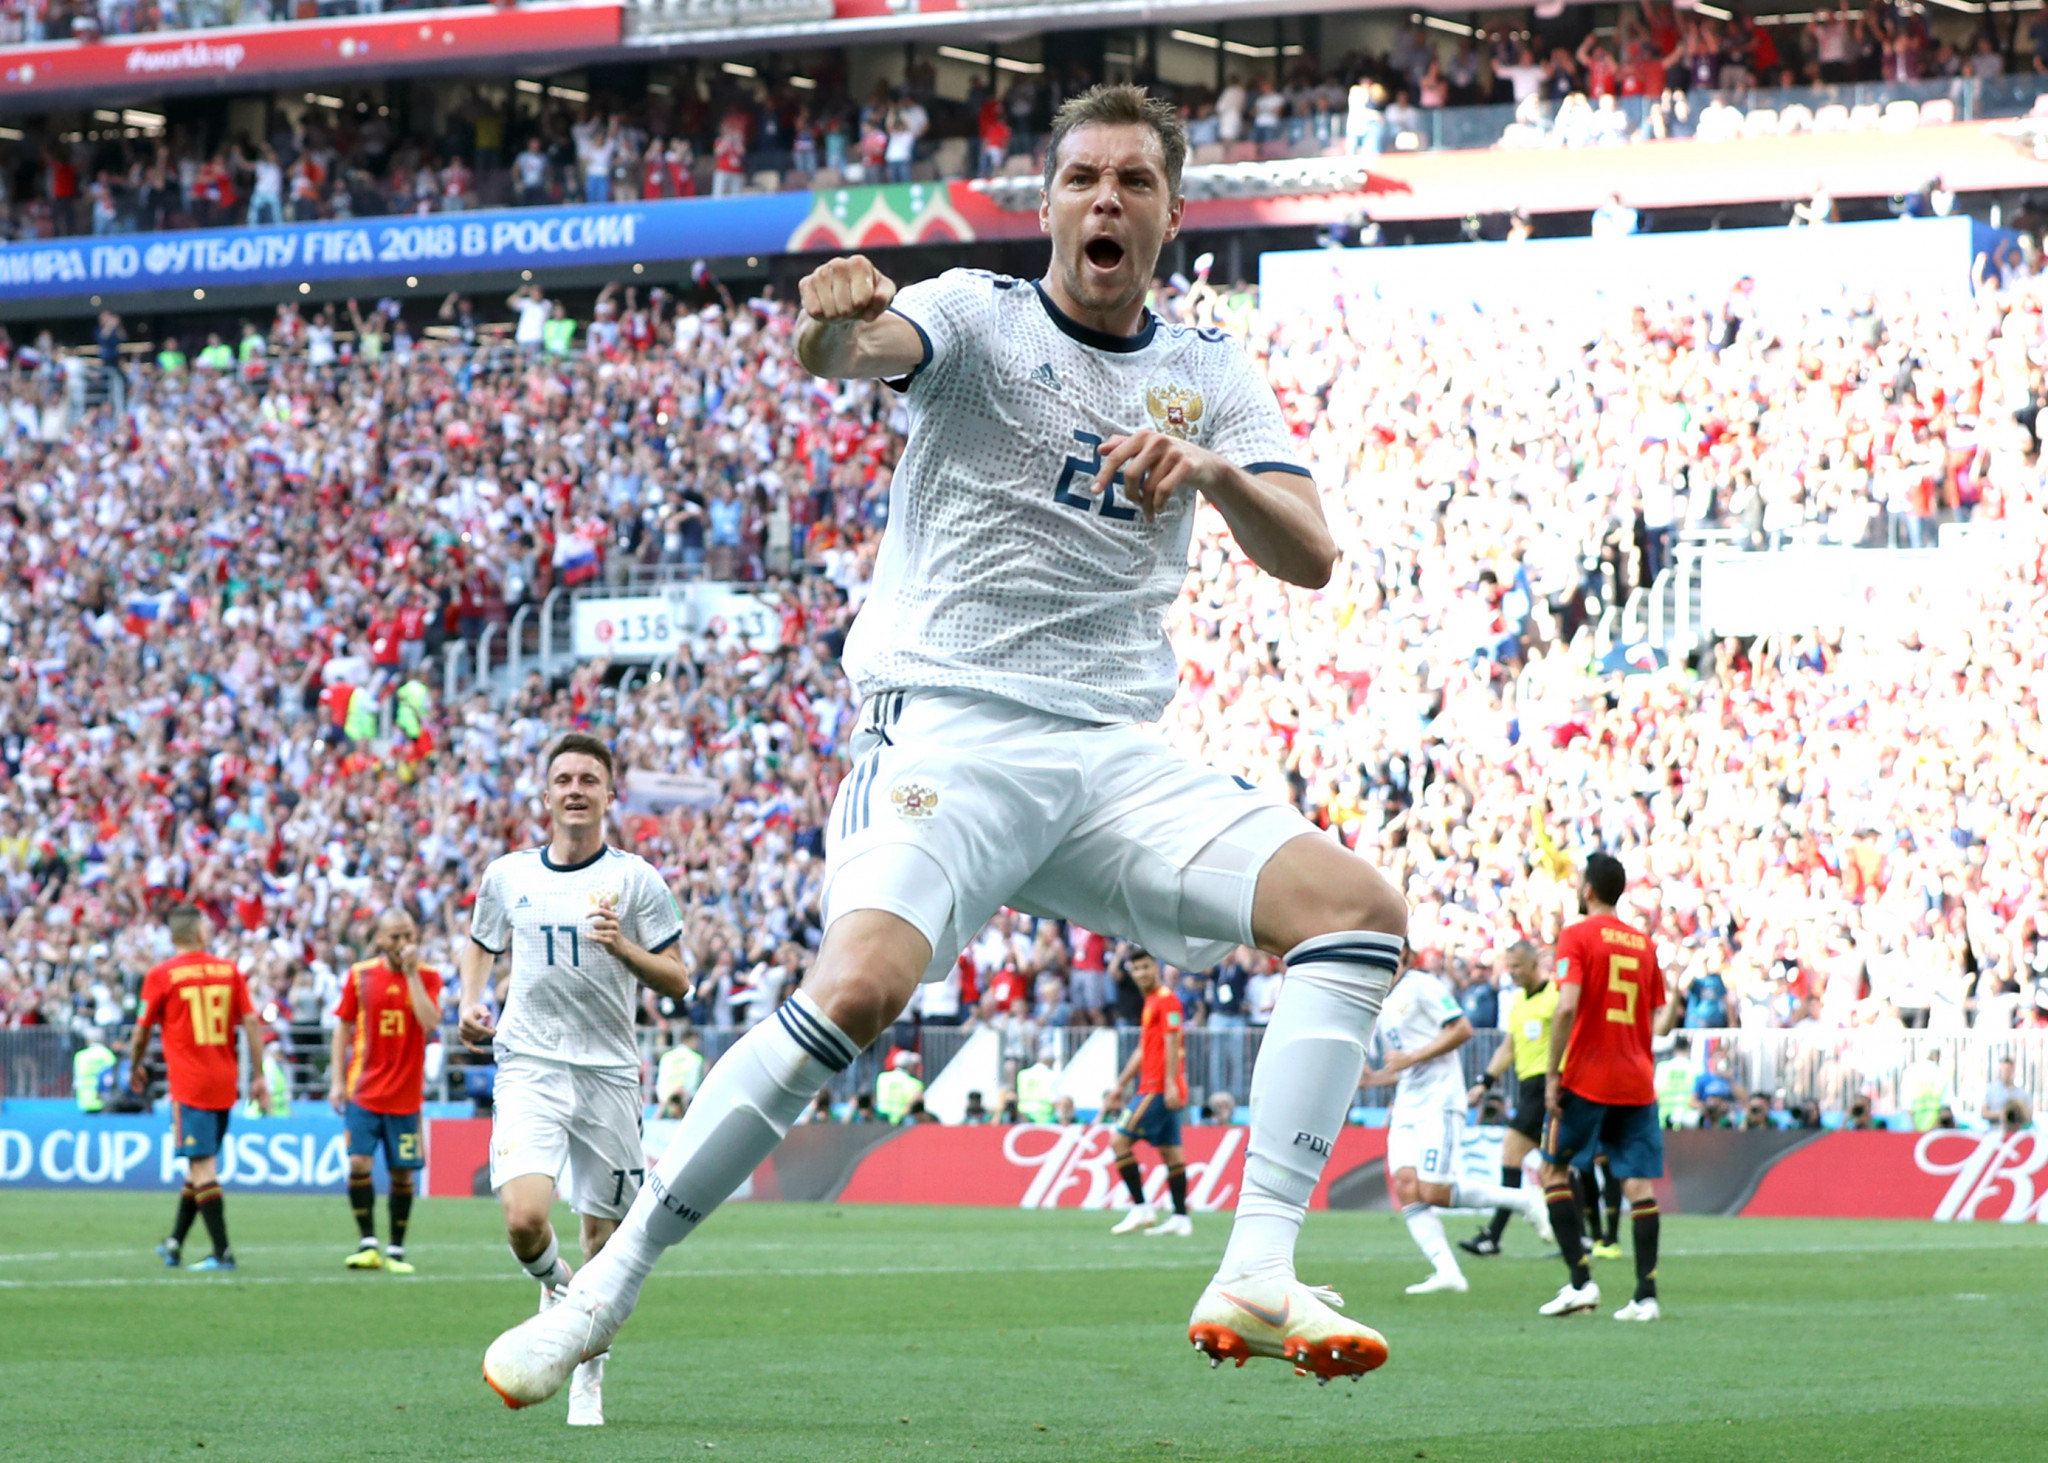 Artem Dzyuba celebrates scoring for Russia against Spain ©Getty Images